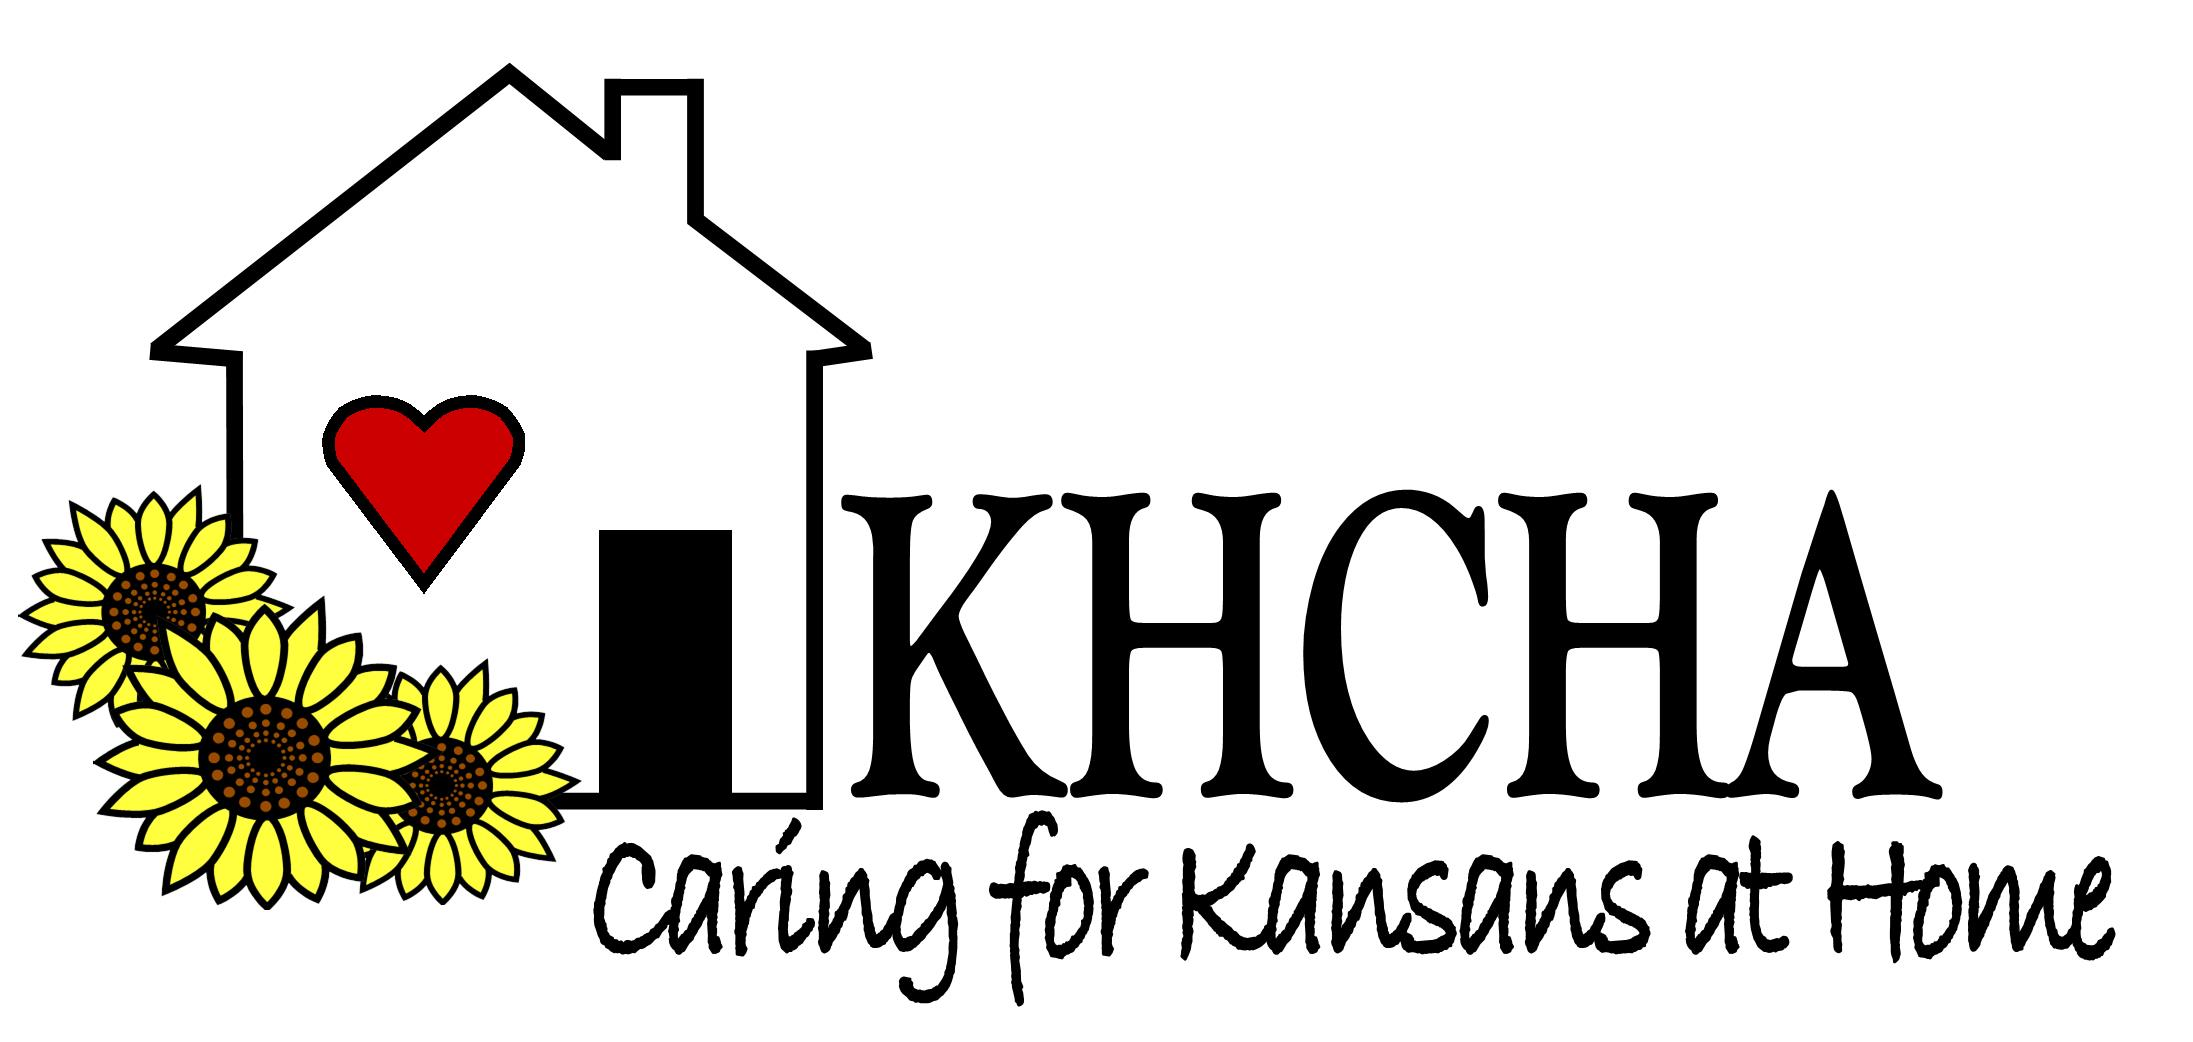 Kansas Home Care & Hospice Association is a client of Chris Zervas, an employee engagement and retention keynote speaker in Oklahoma